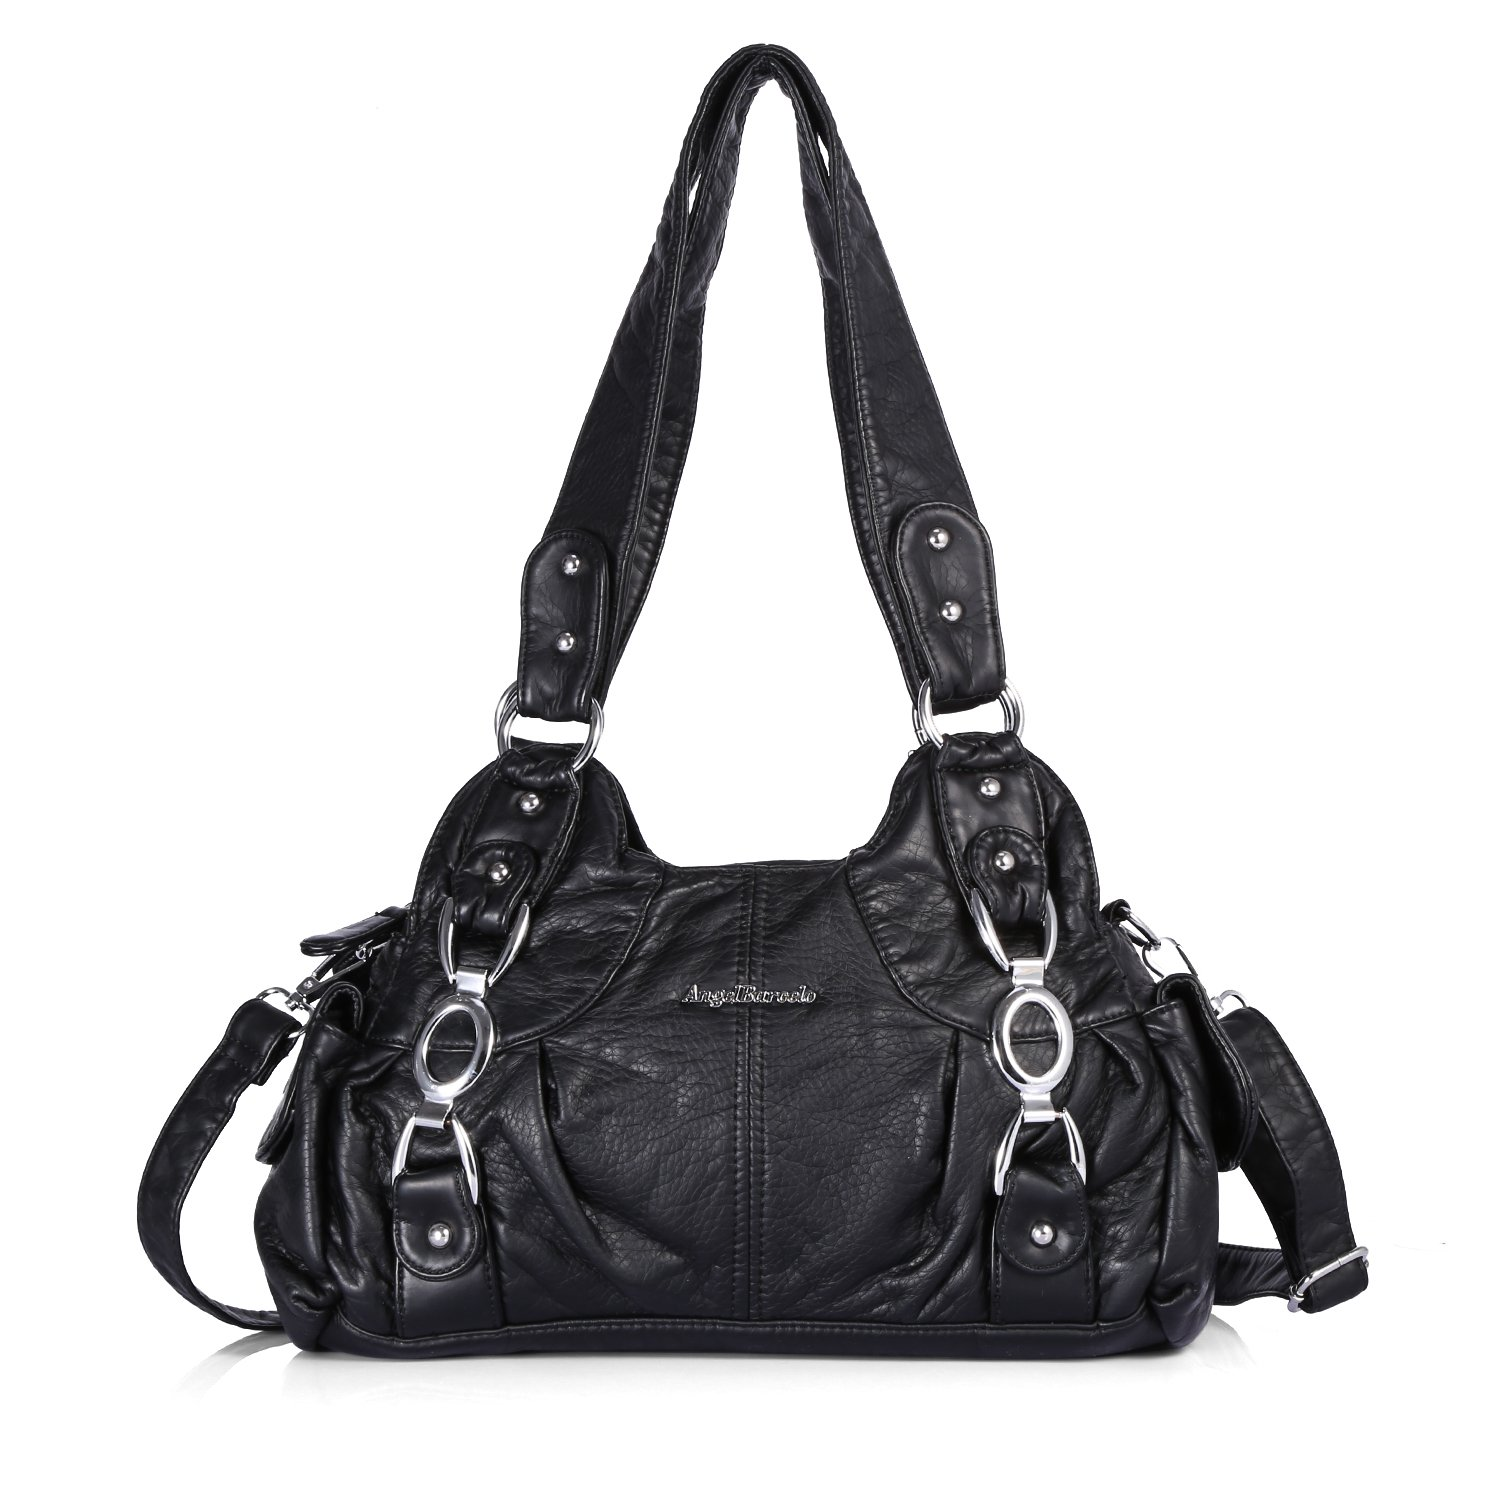 Handbag Hobo Women Bag Roomy Multiple Pockets Street Ladies' Shoulder Bag Fashion PU Tote Satchel Top Handle Bag (AKW22024 1#Black)